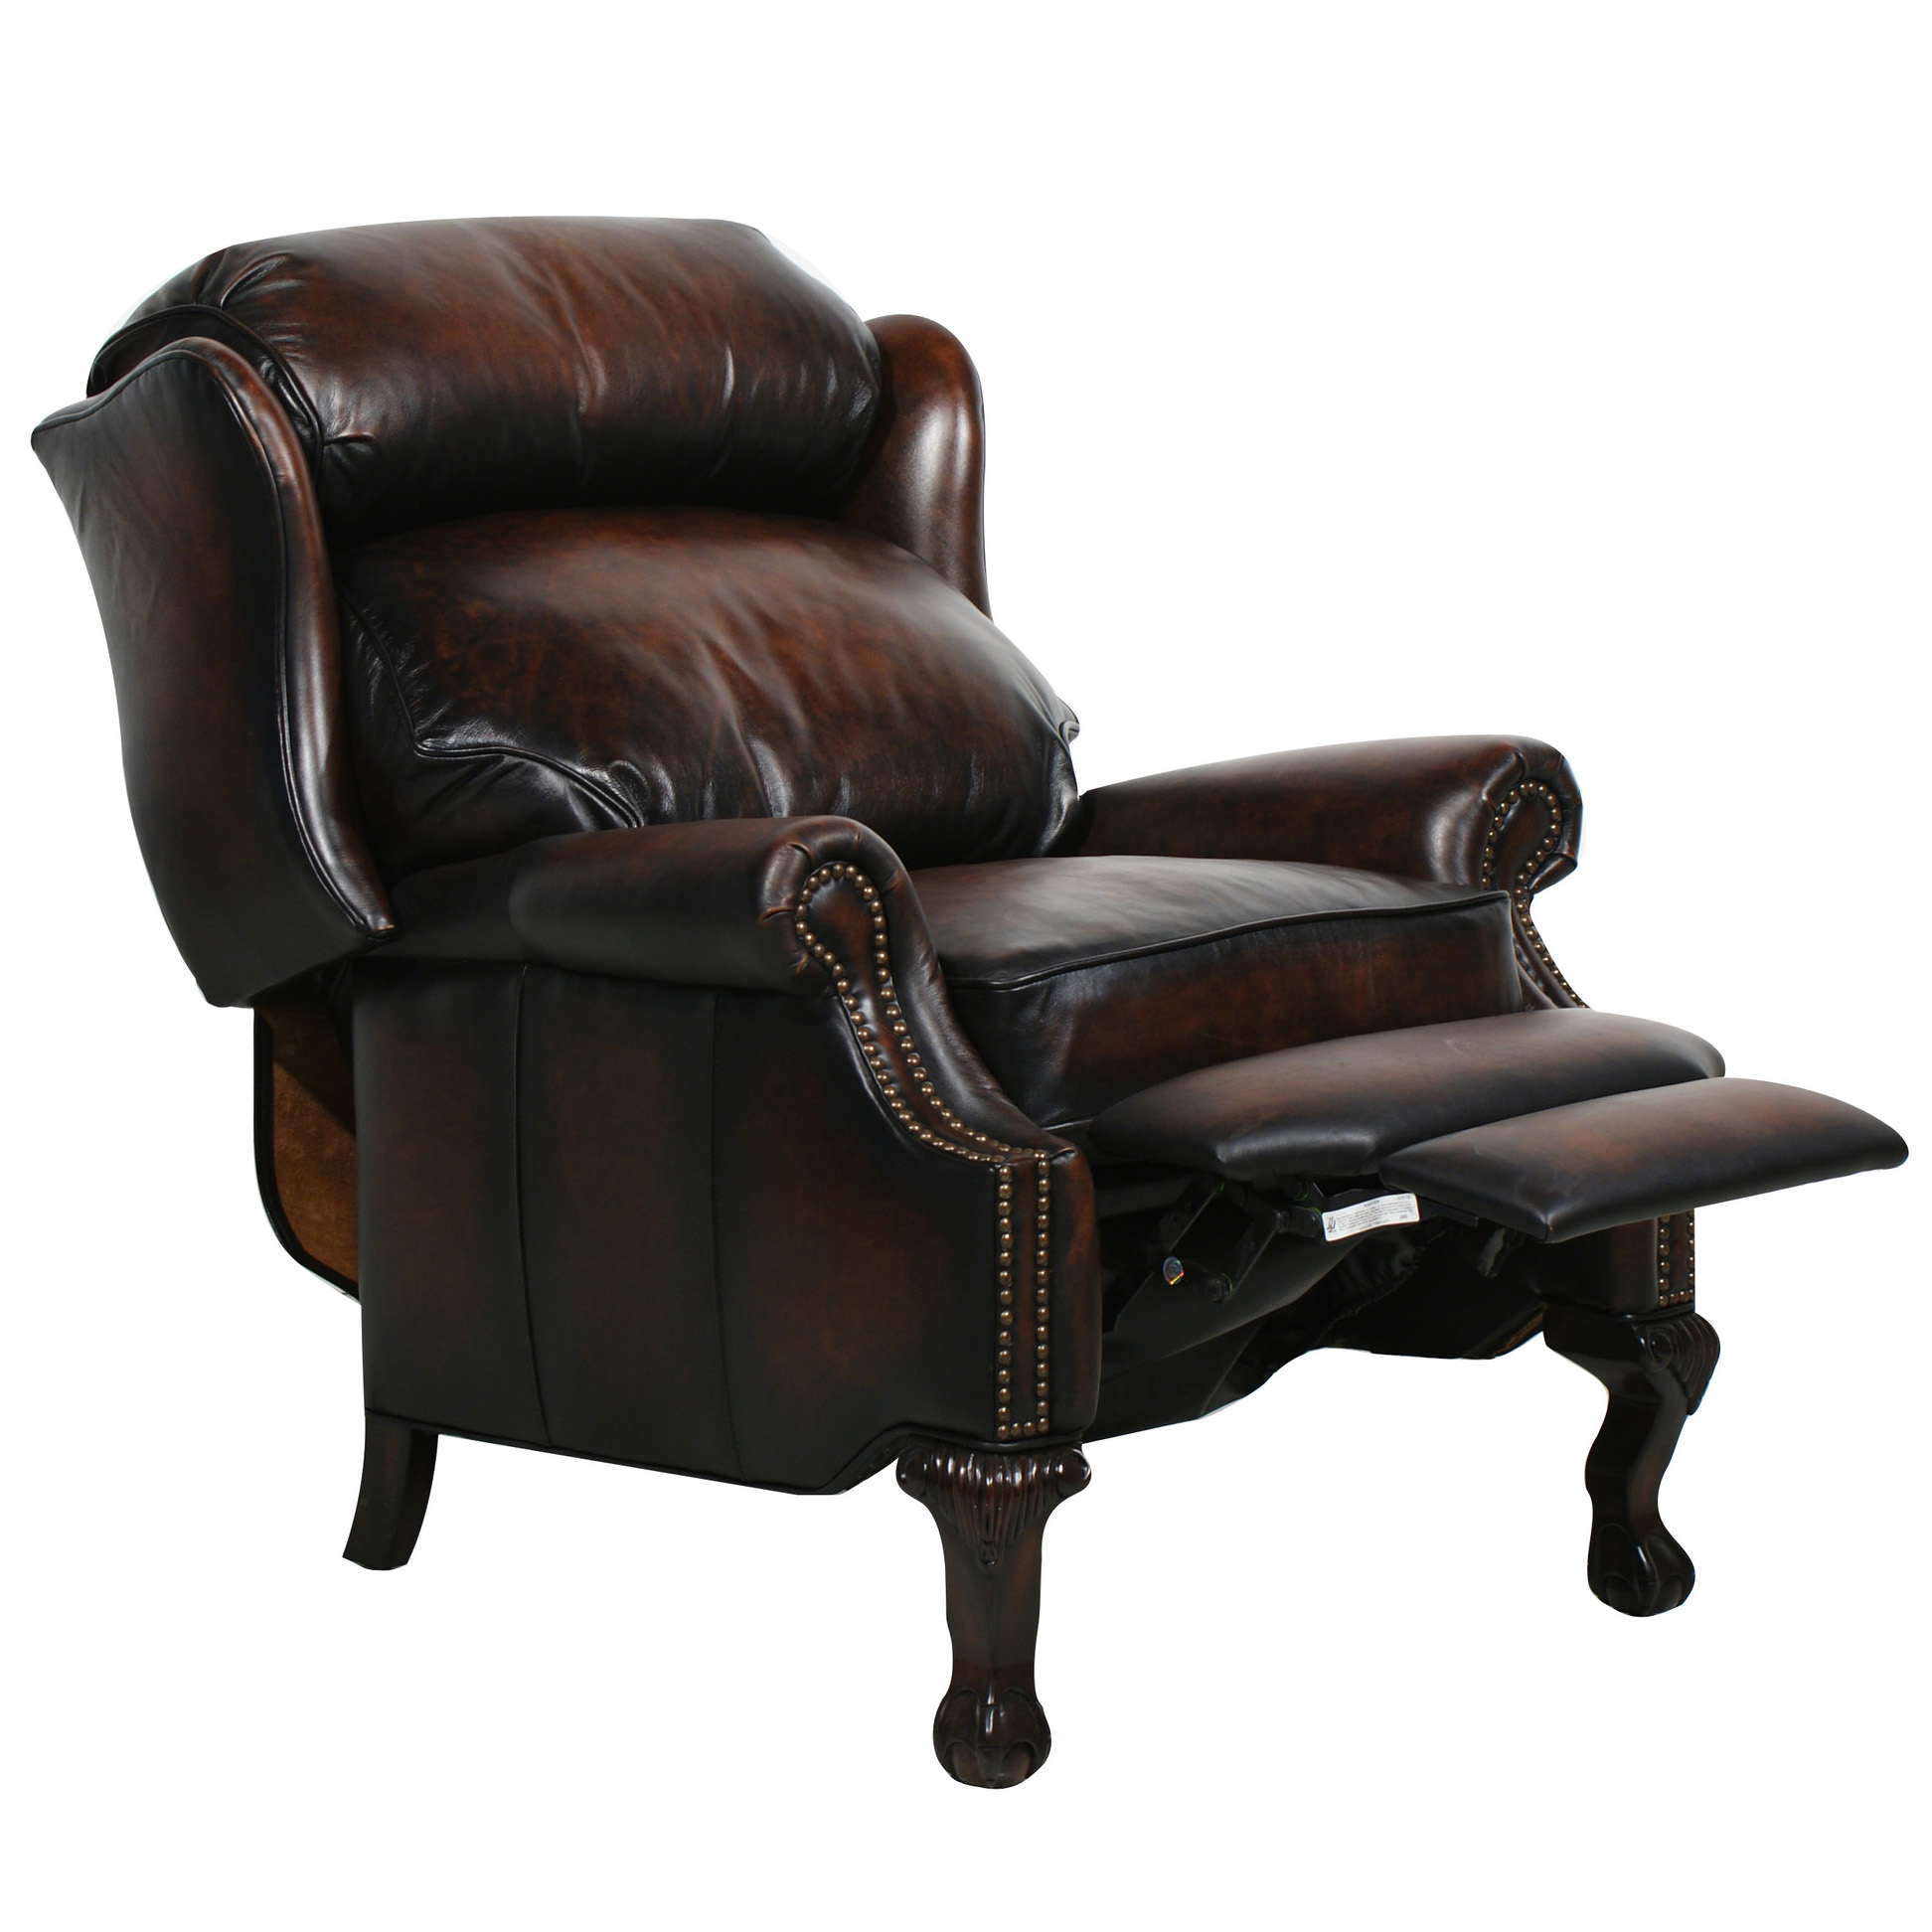 luxury leather recliner chairs. barcalounger danbury ii recliner chair luxury leather chairs c